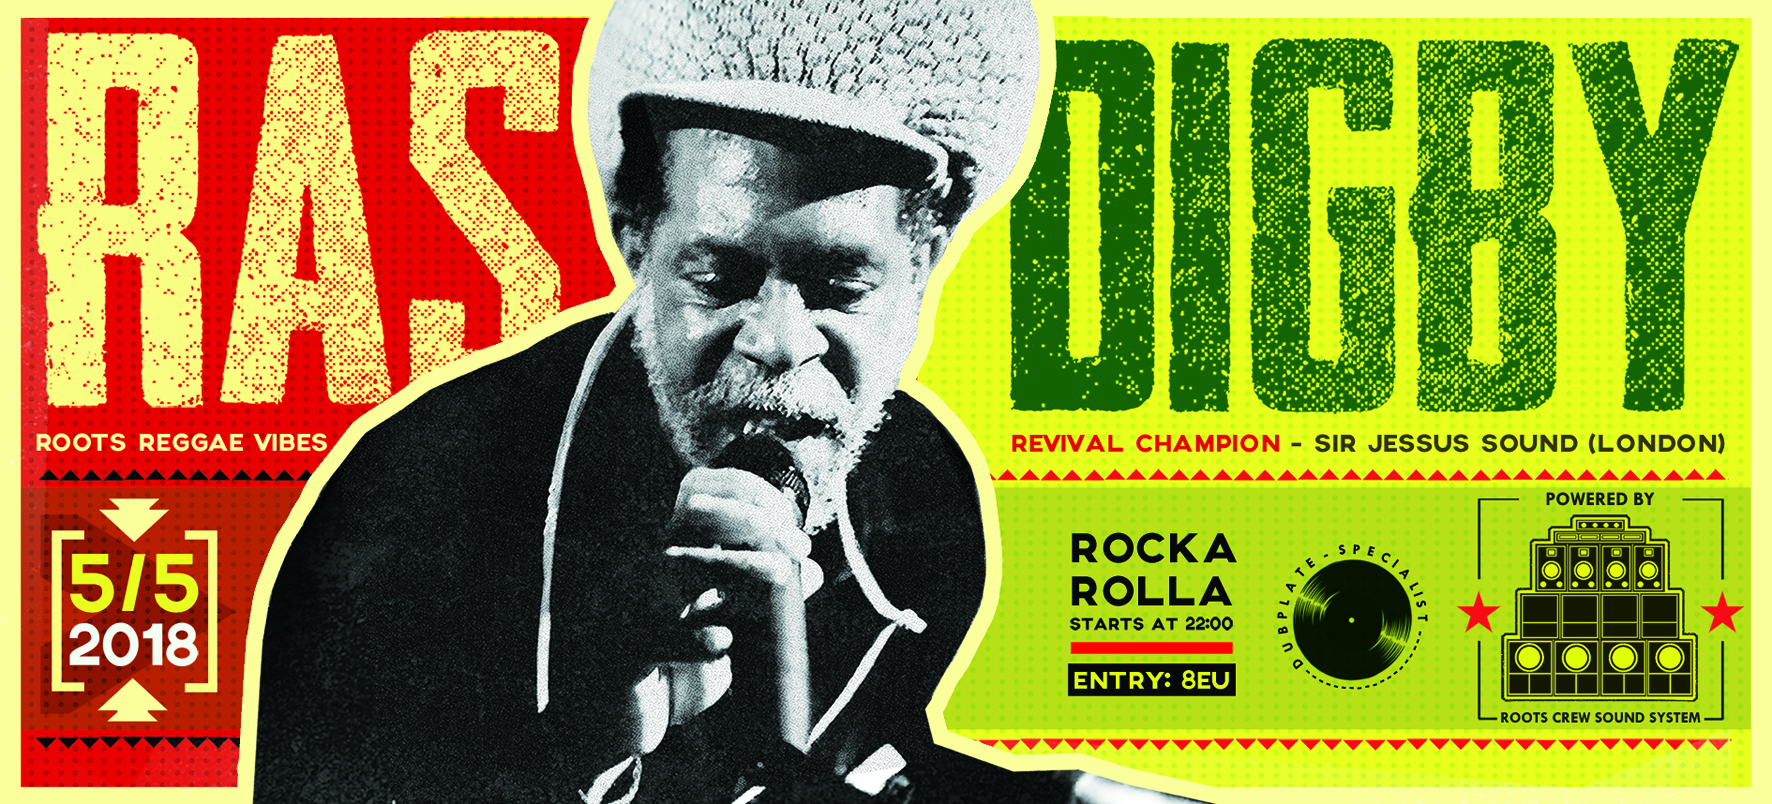 Ras Digby(UK) on Roots Crew Sound in Nicosia Event Image